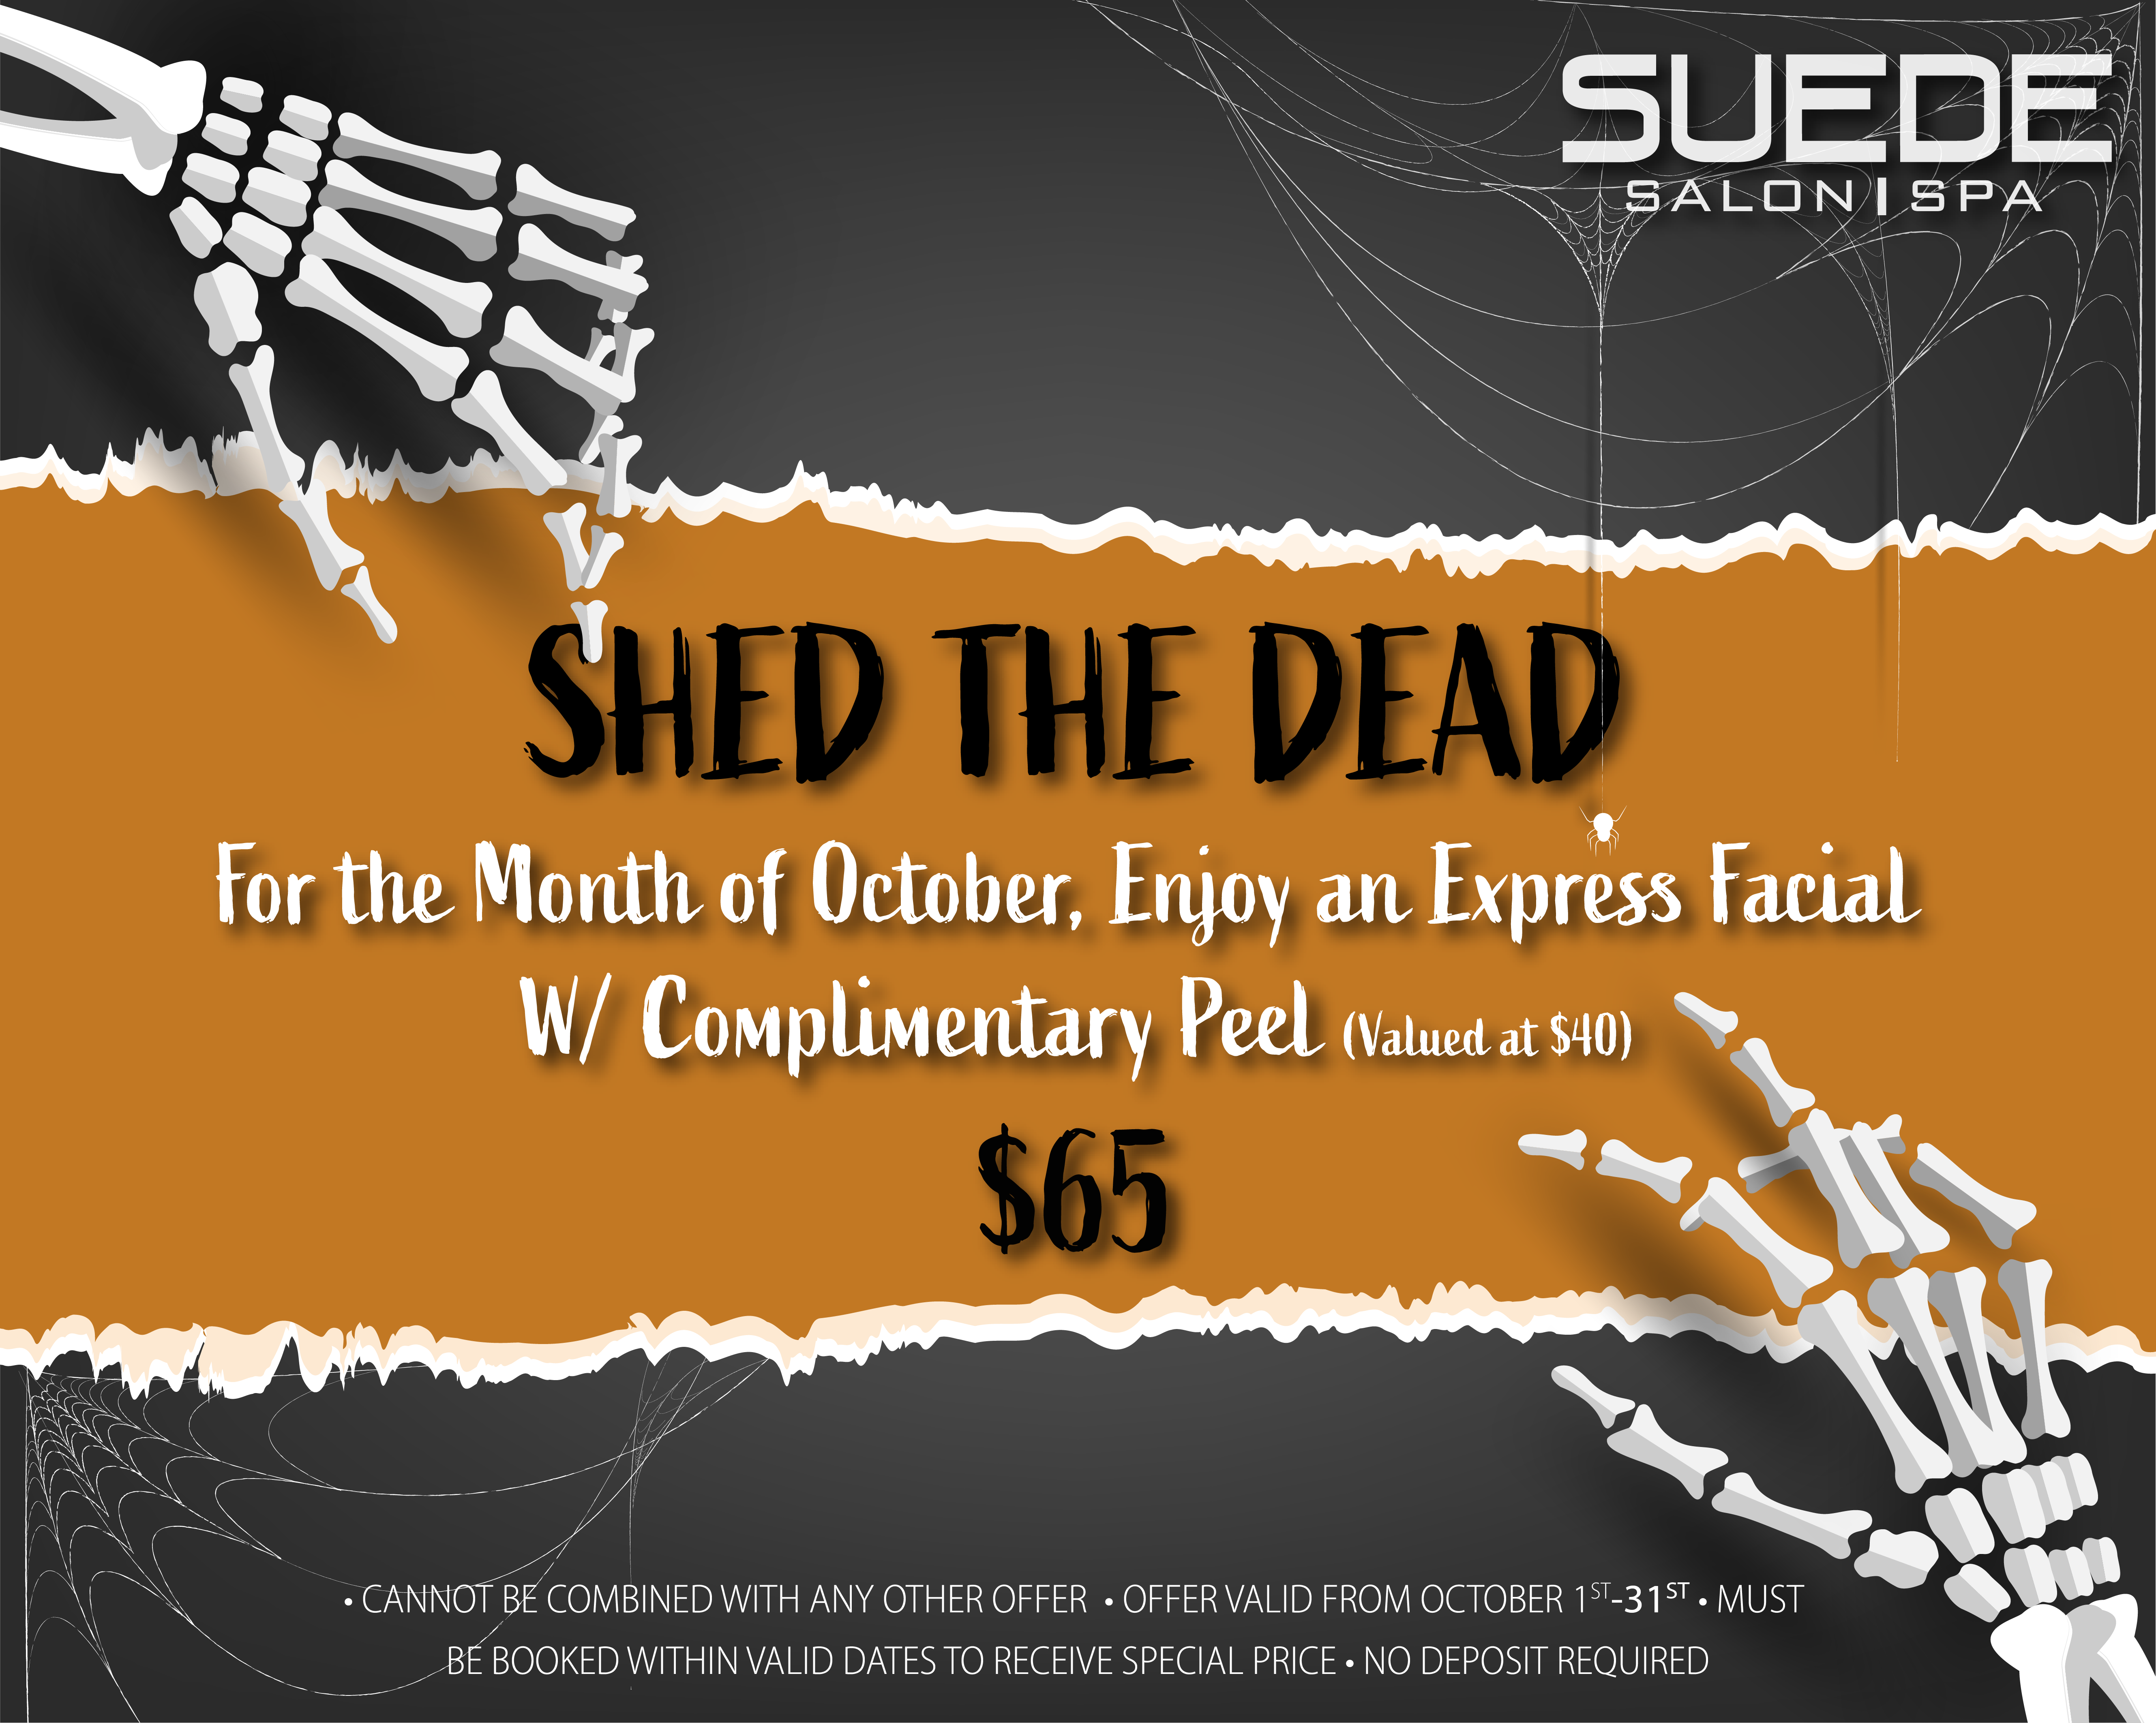 Suede salon facial offer